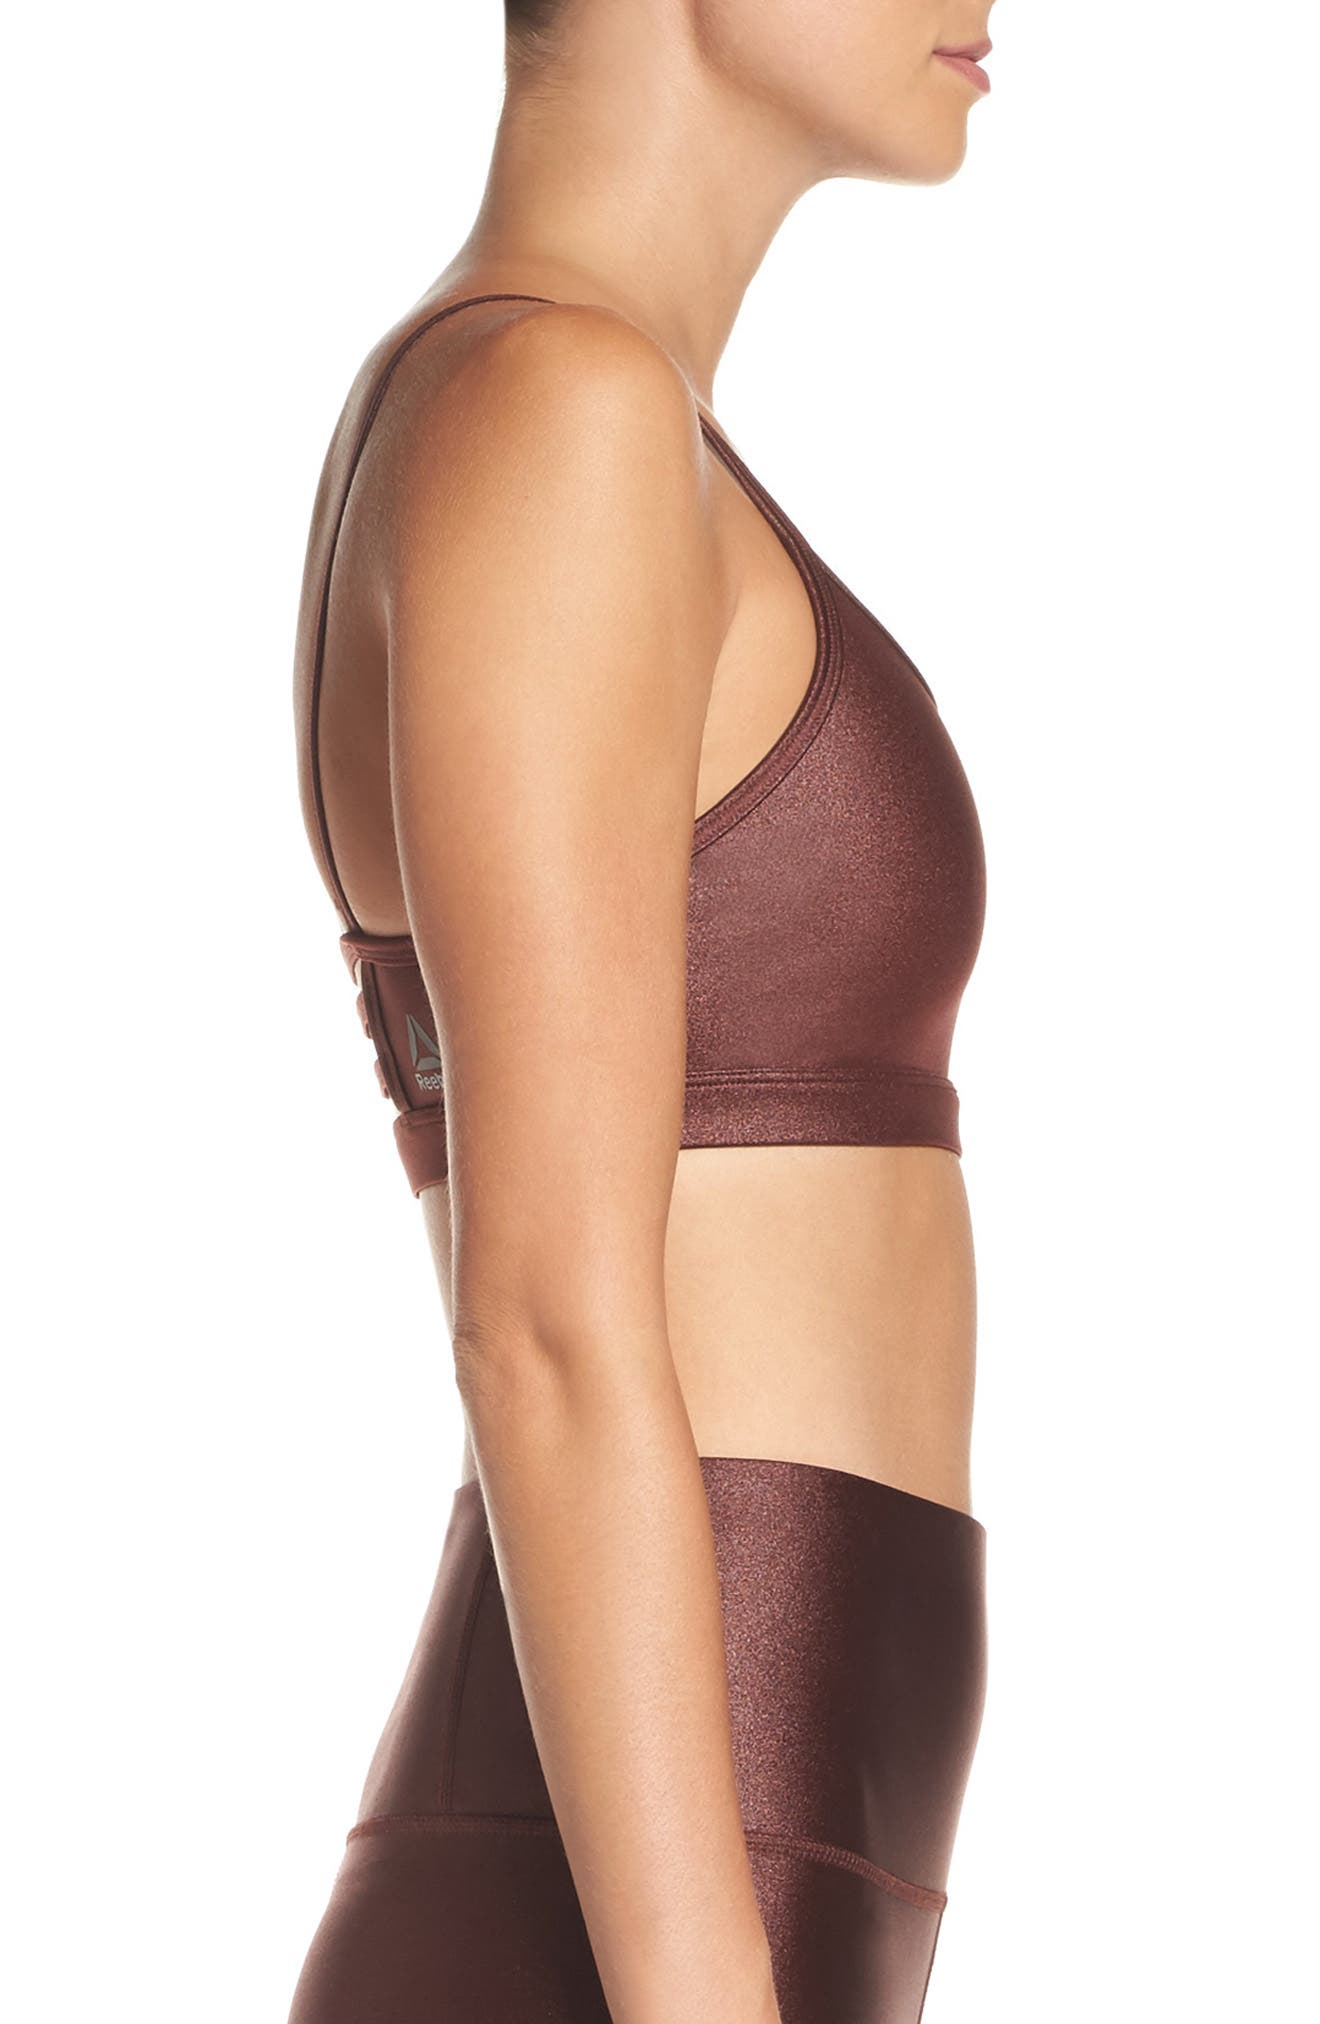 x FACE Hero Rebel Sports Bra,                             Alternate thumbnail 3, color,                             Burnt Sienna